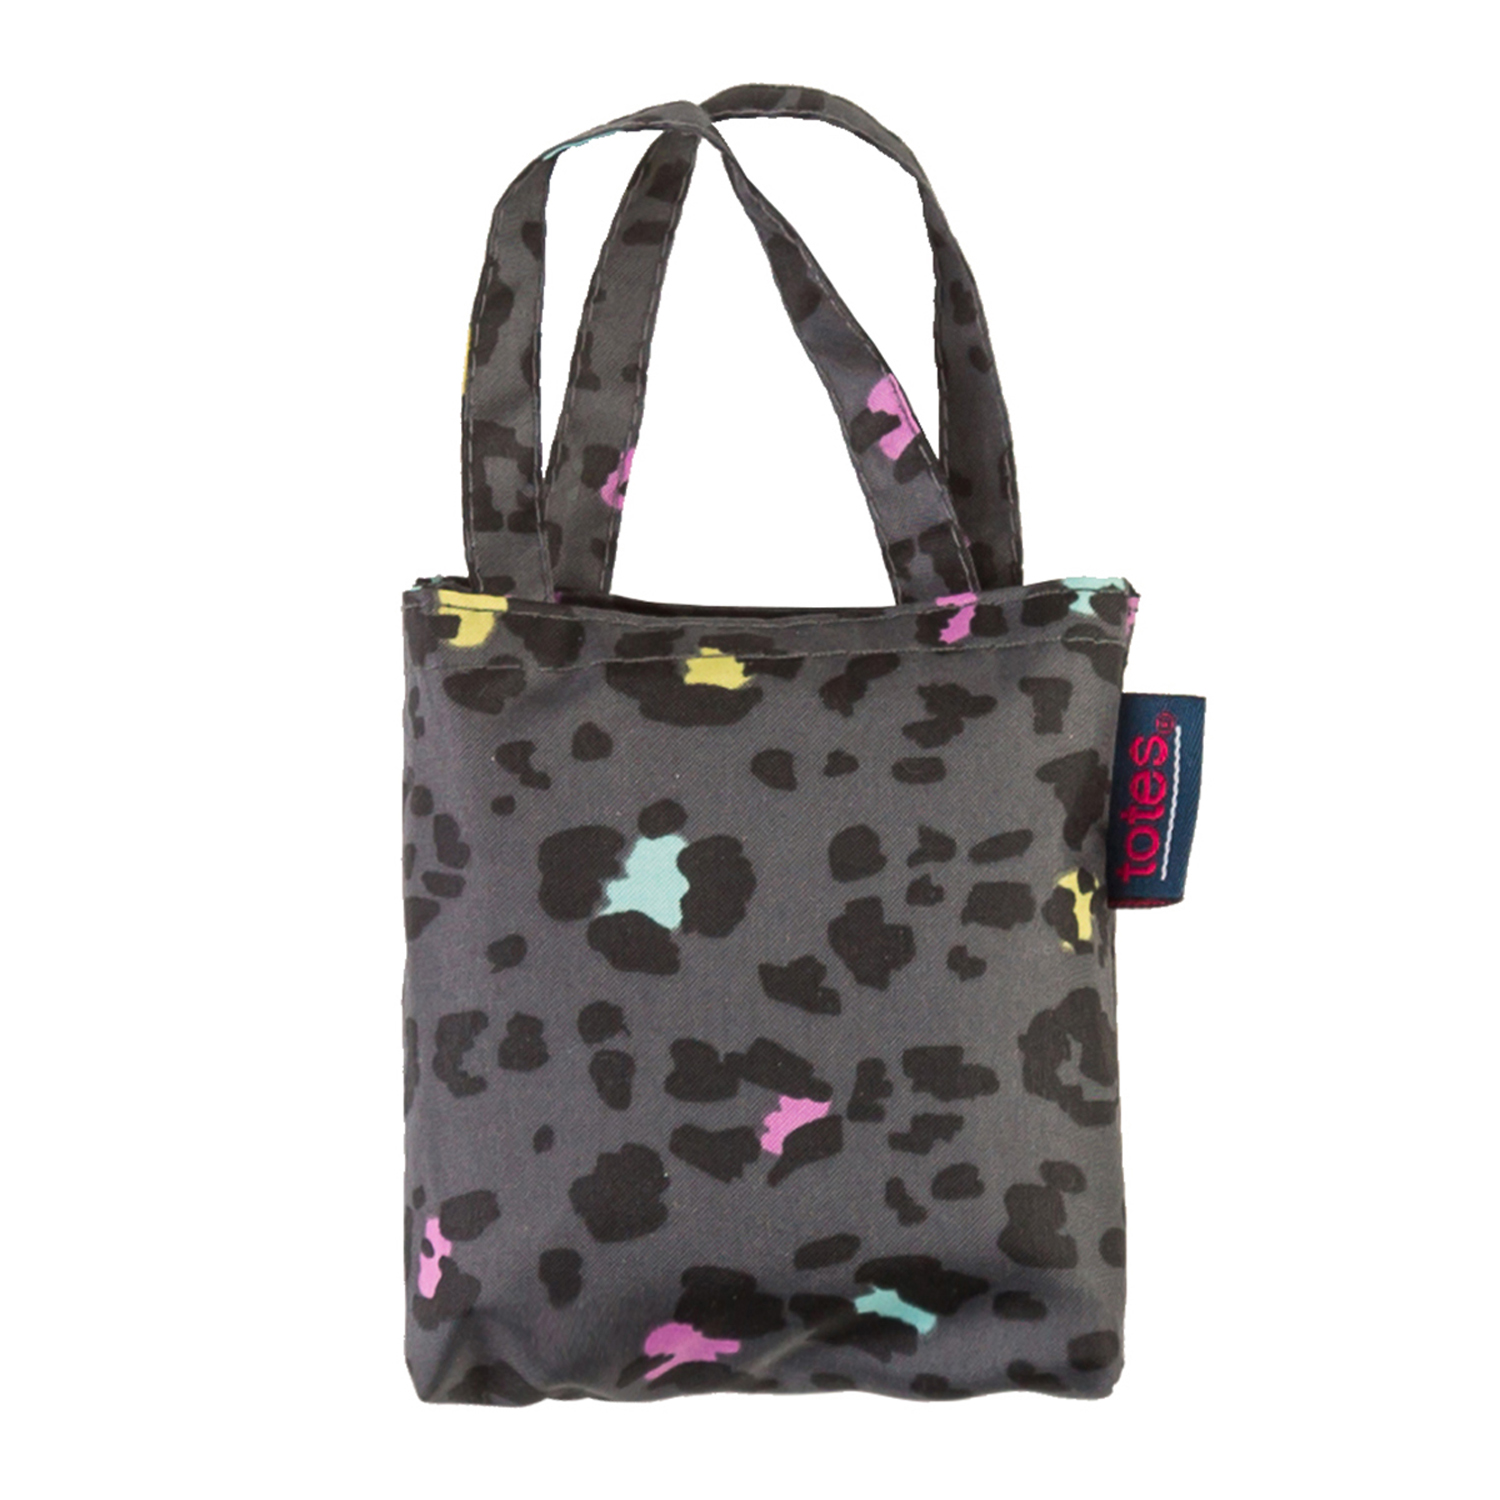 Image of Totes Bag In Bag Shopper, Panther